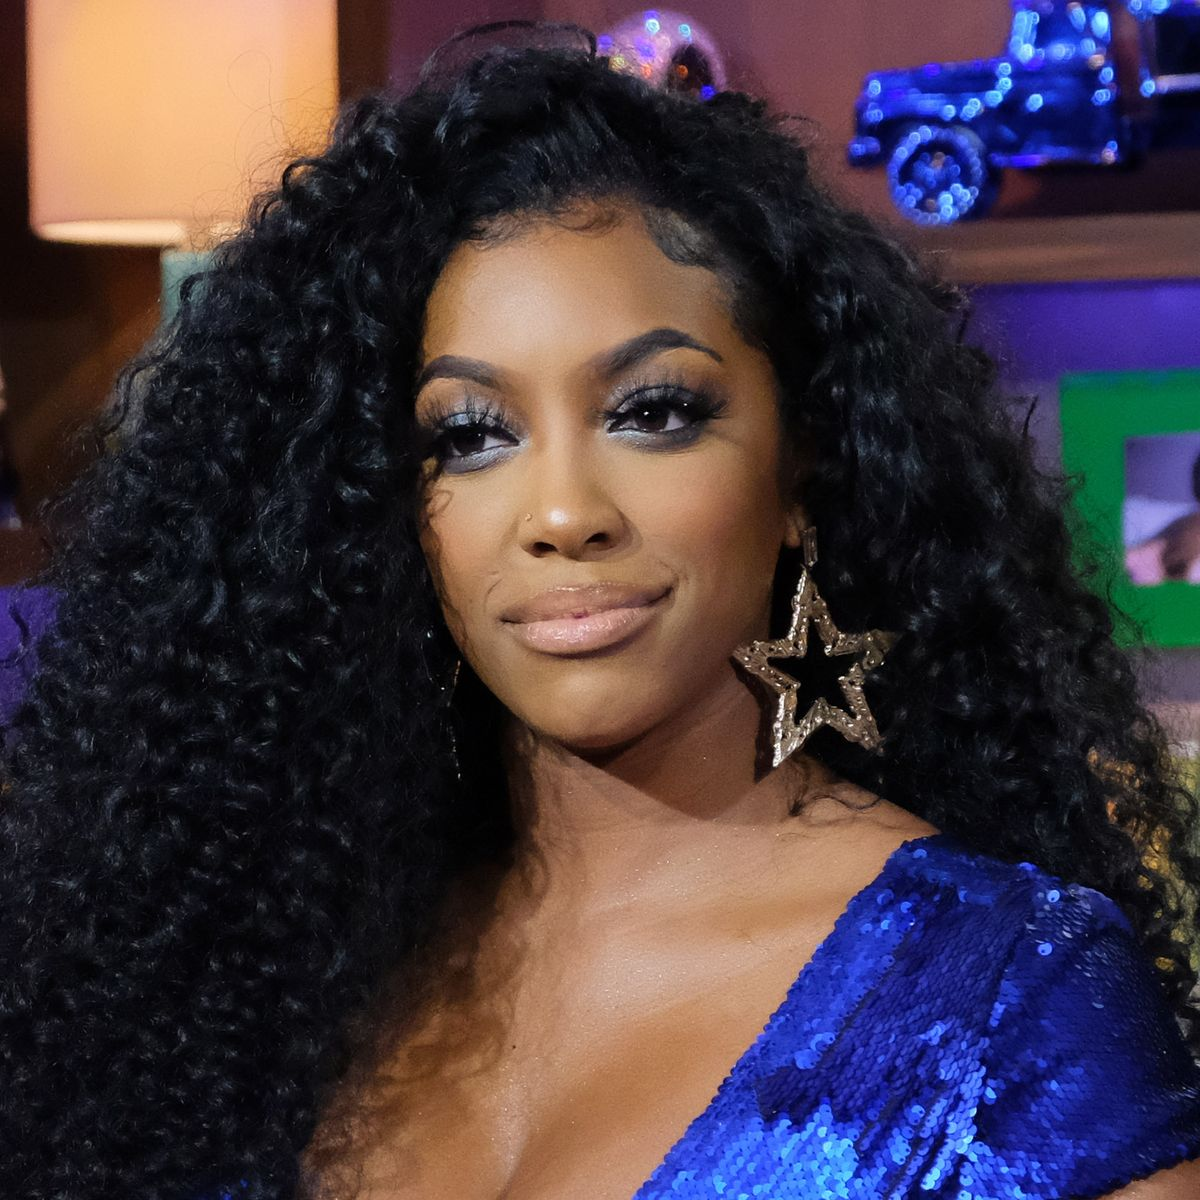 Porsha Williams Is Featured In InStyle Magazine - See How They Praise Her